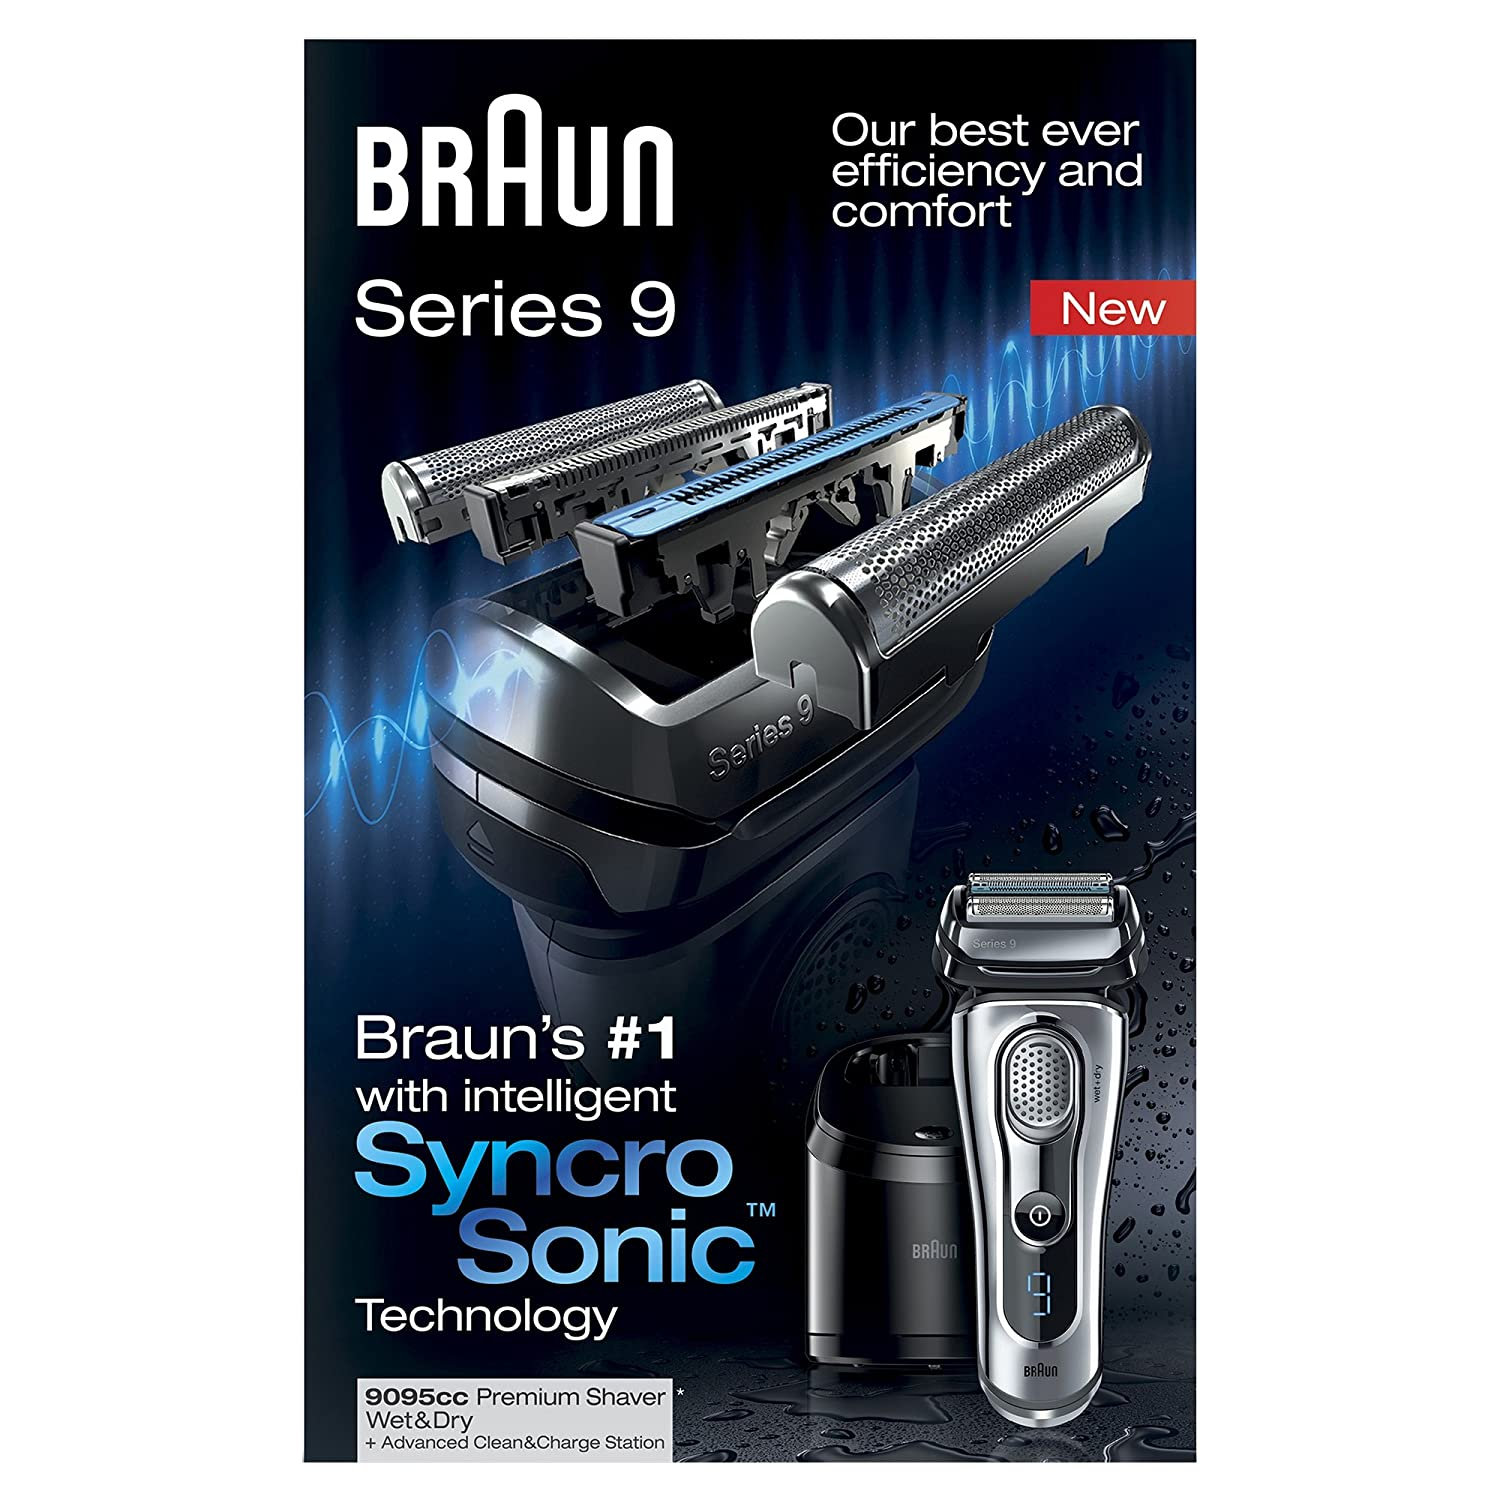 braun series 9 9095cc electric male shaver 69055871805 ebay. Black Bedroom Furniture Sets. Home Design Ideas